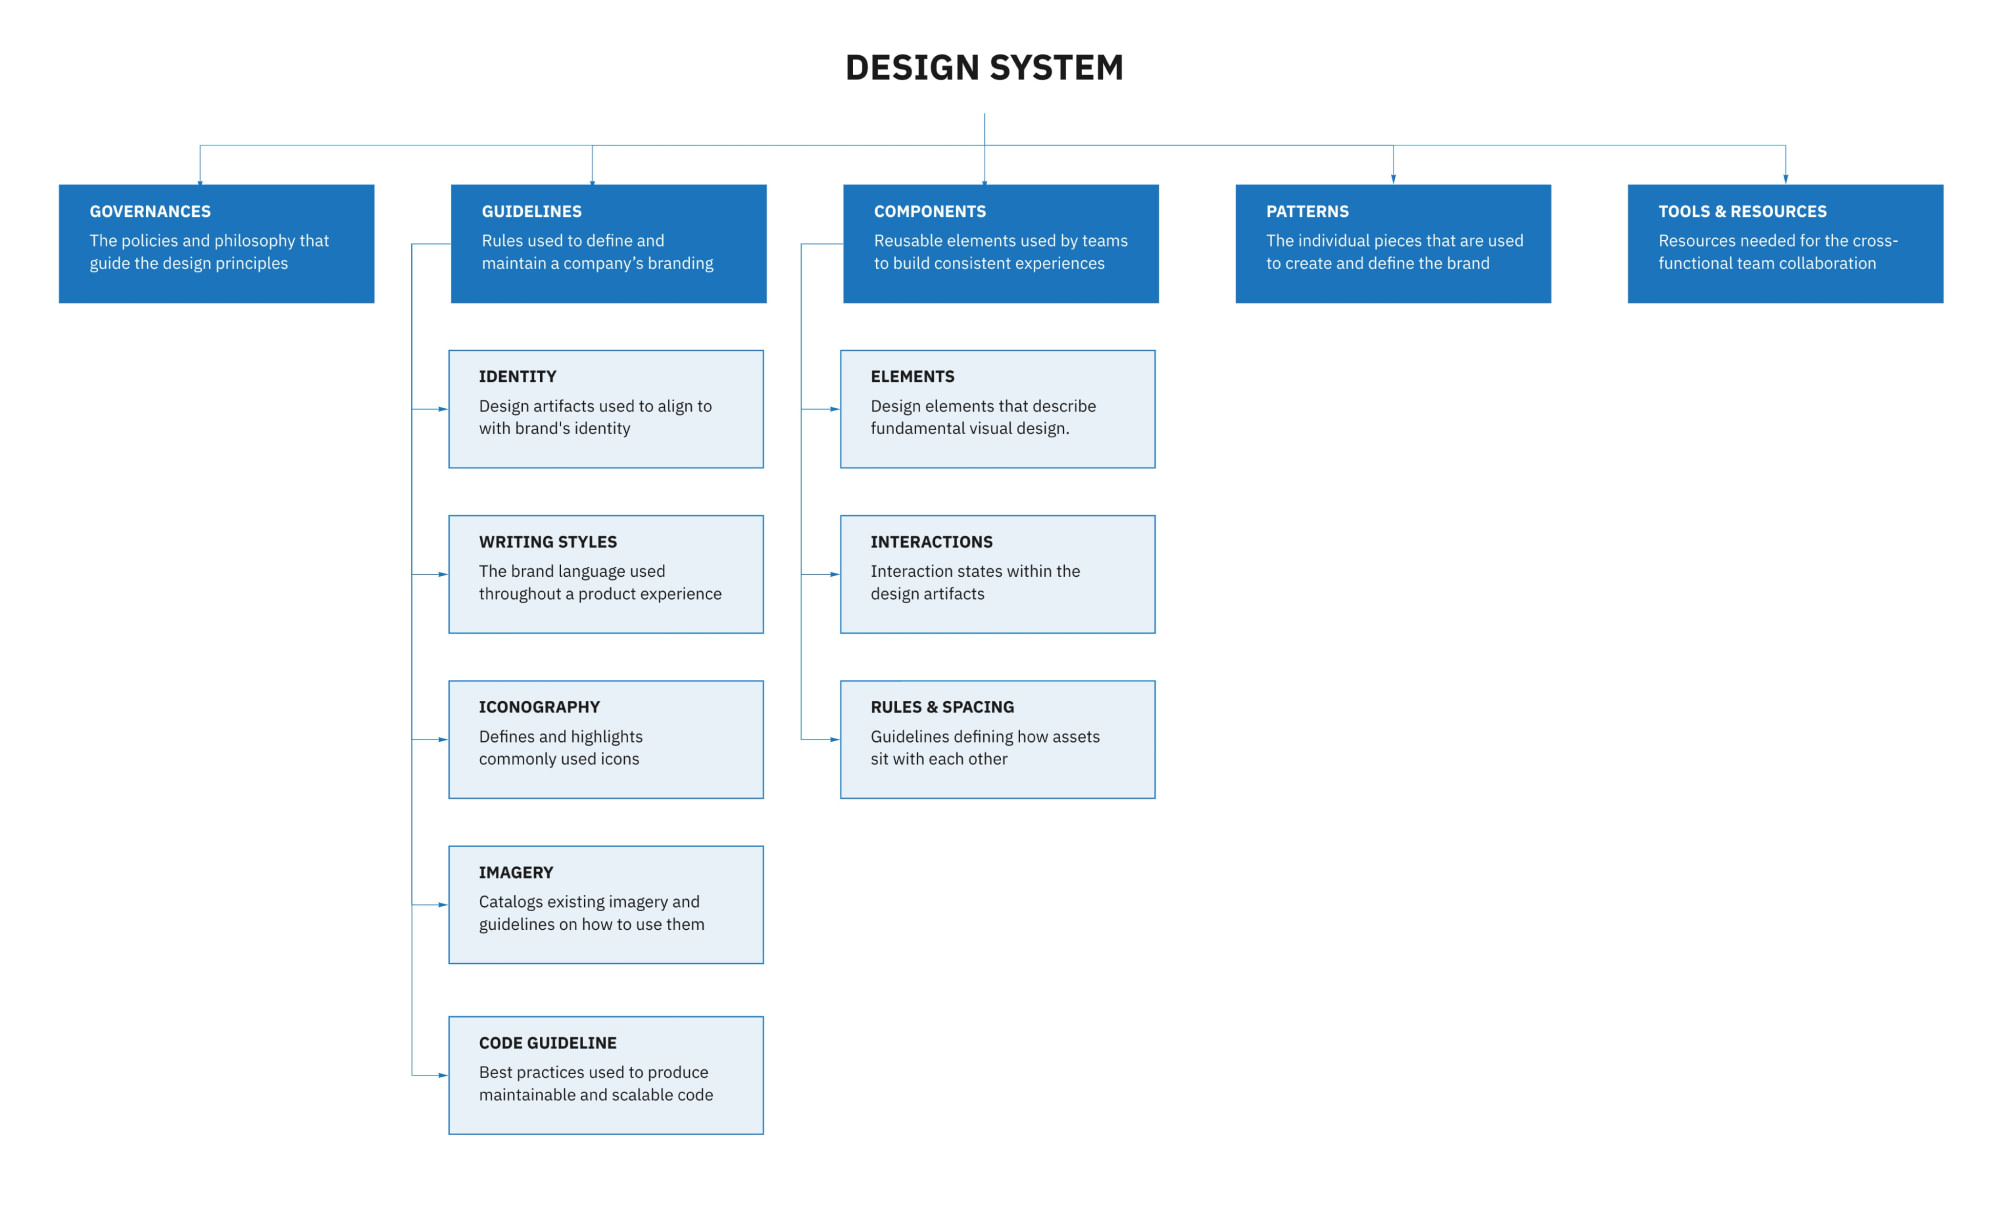 A design system is a collection of guidelines and reusable elements that help designers and developers work efficiently as they build cohesive user experiences and brand standards across products.